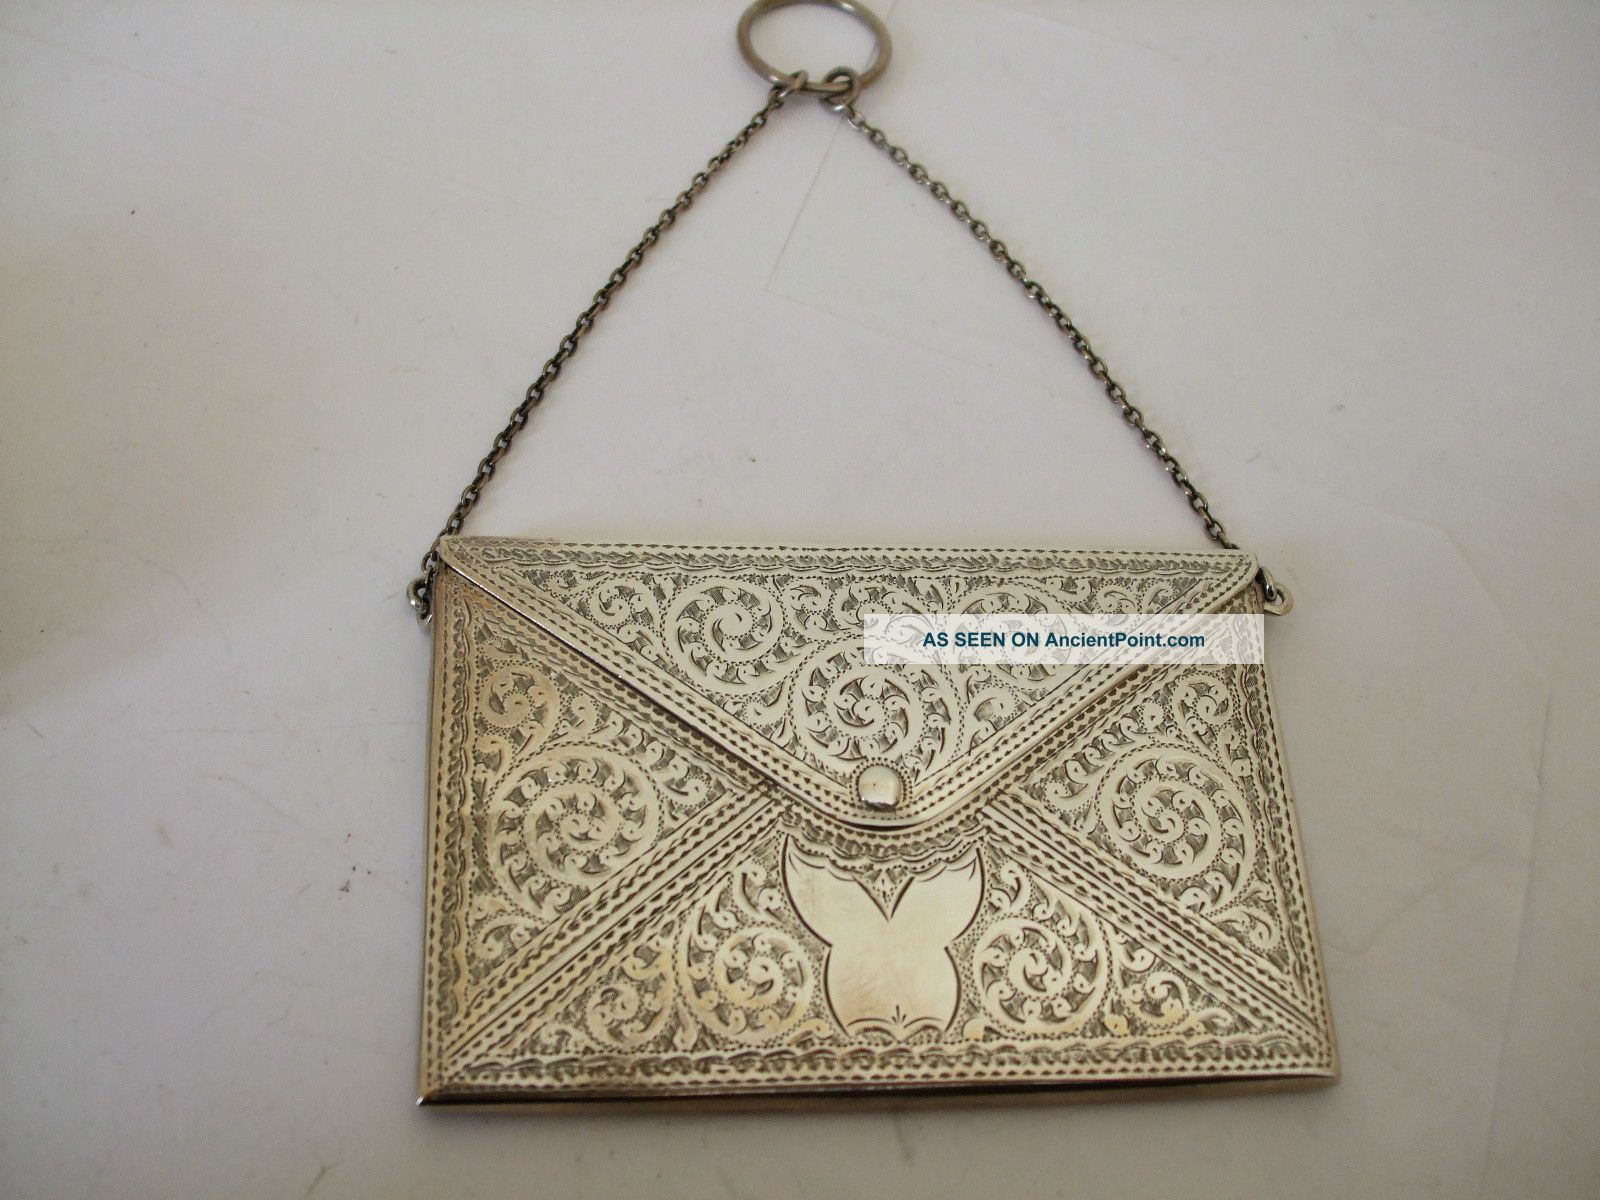 Antique Silver Engraved Envelope Card Case Hm 1906 Art Nouveau Swags And Swirls Card Cases photo